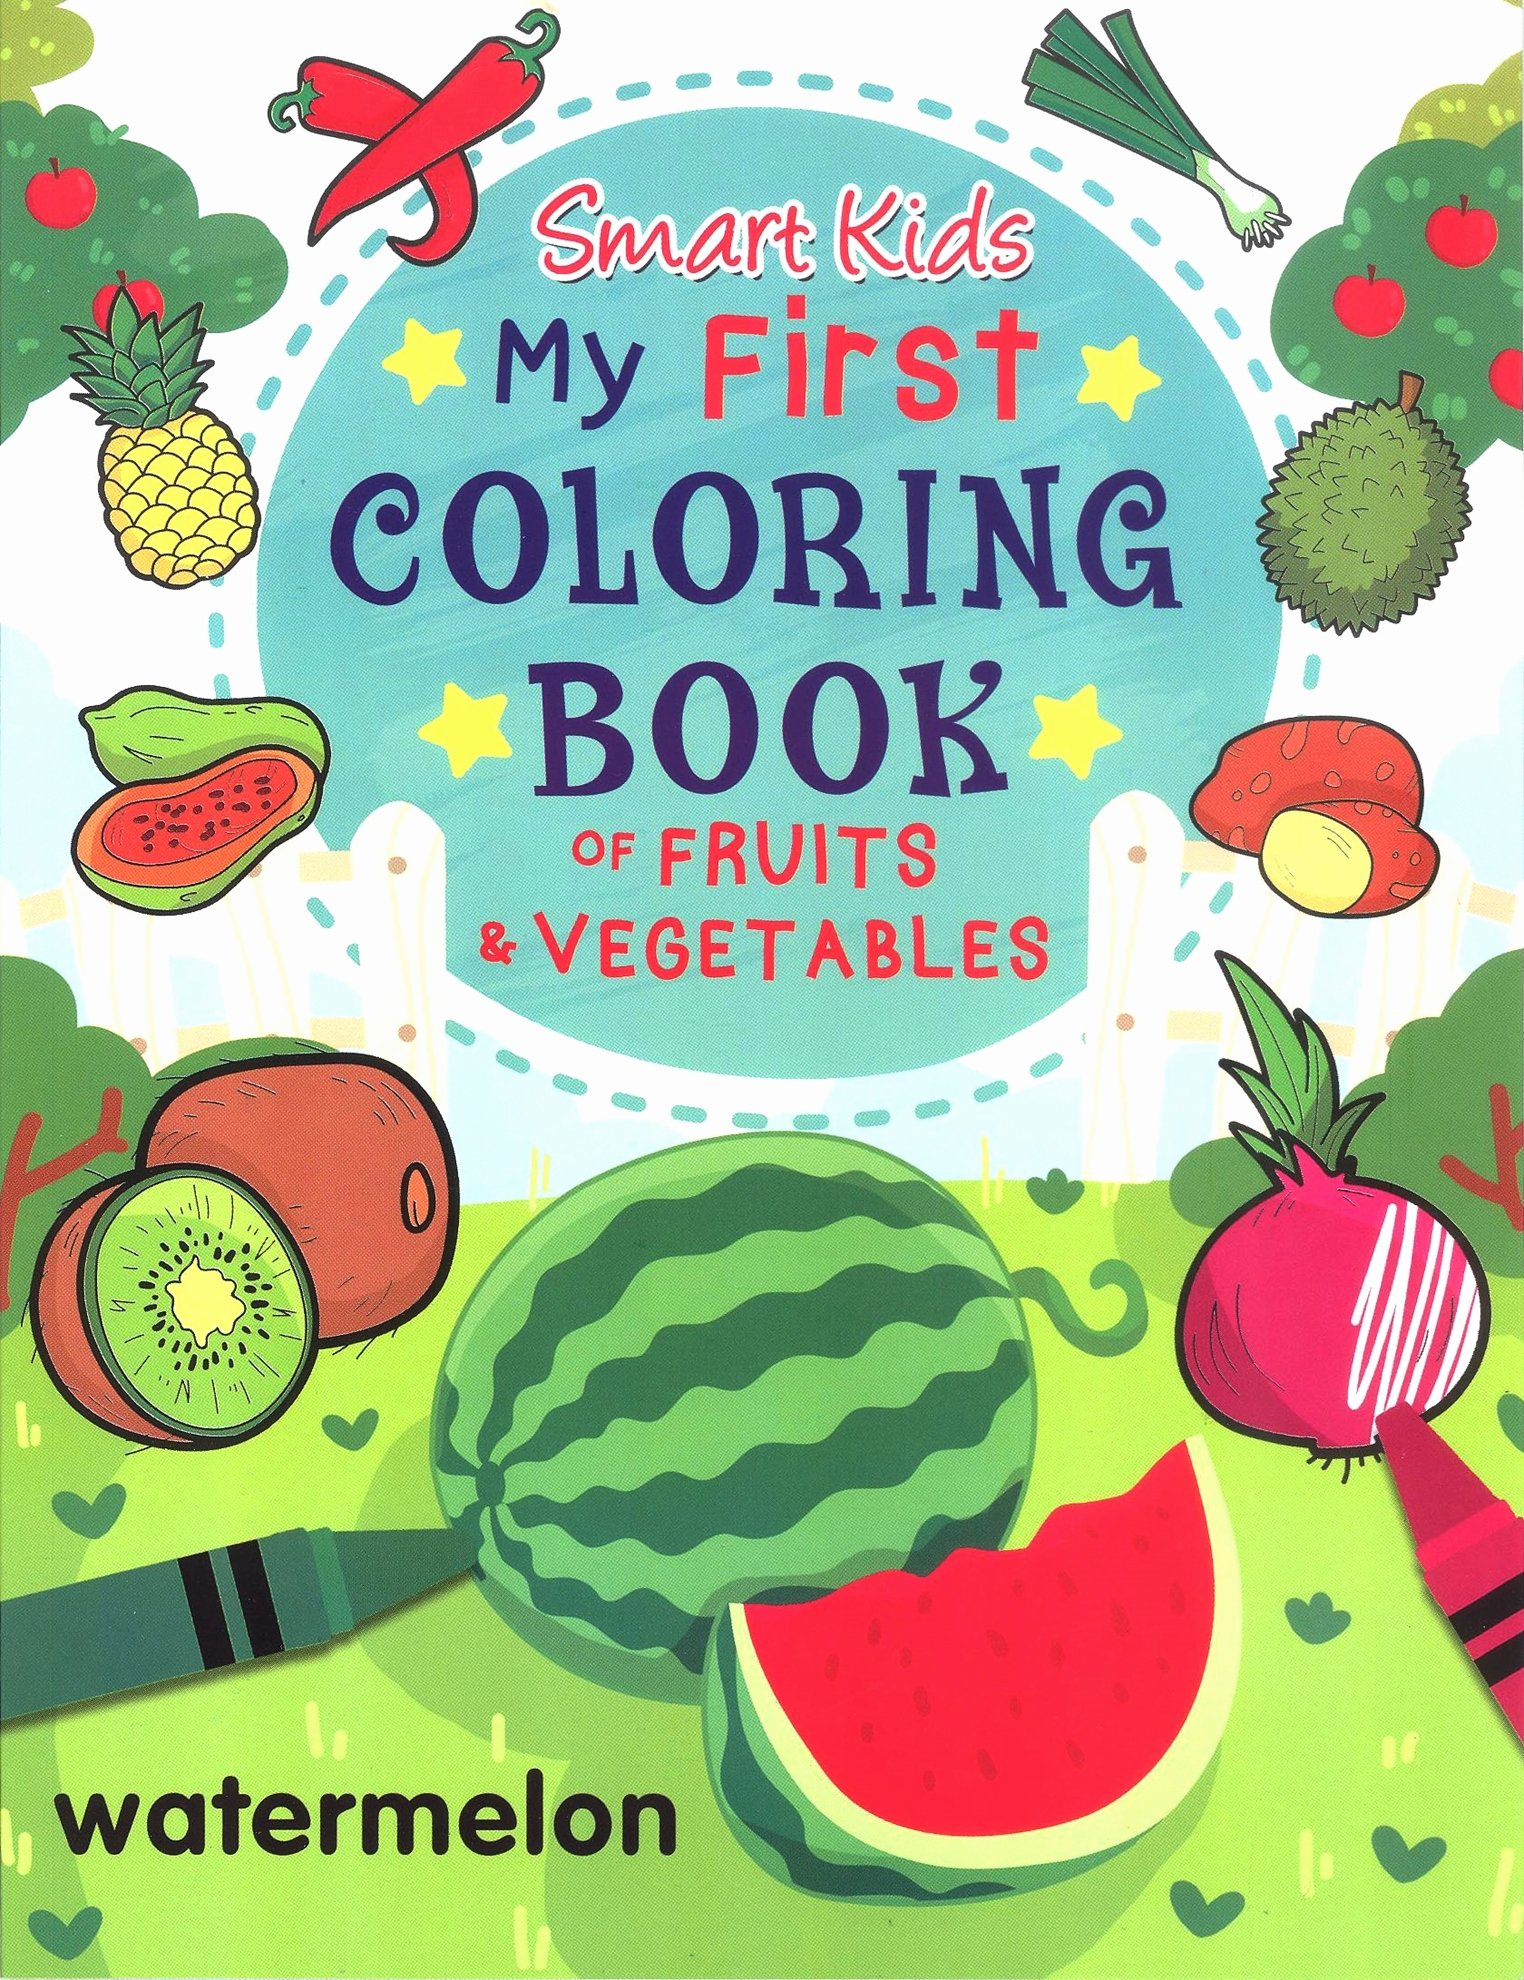 Fruits and Vegetables Worksheets for Preschoolers New Ws Smart Kids My First Coloring Book Fruits